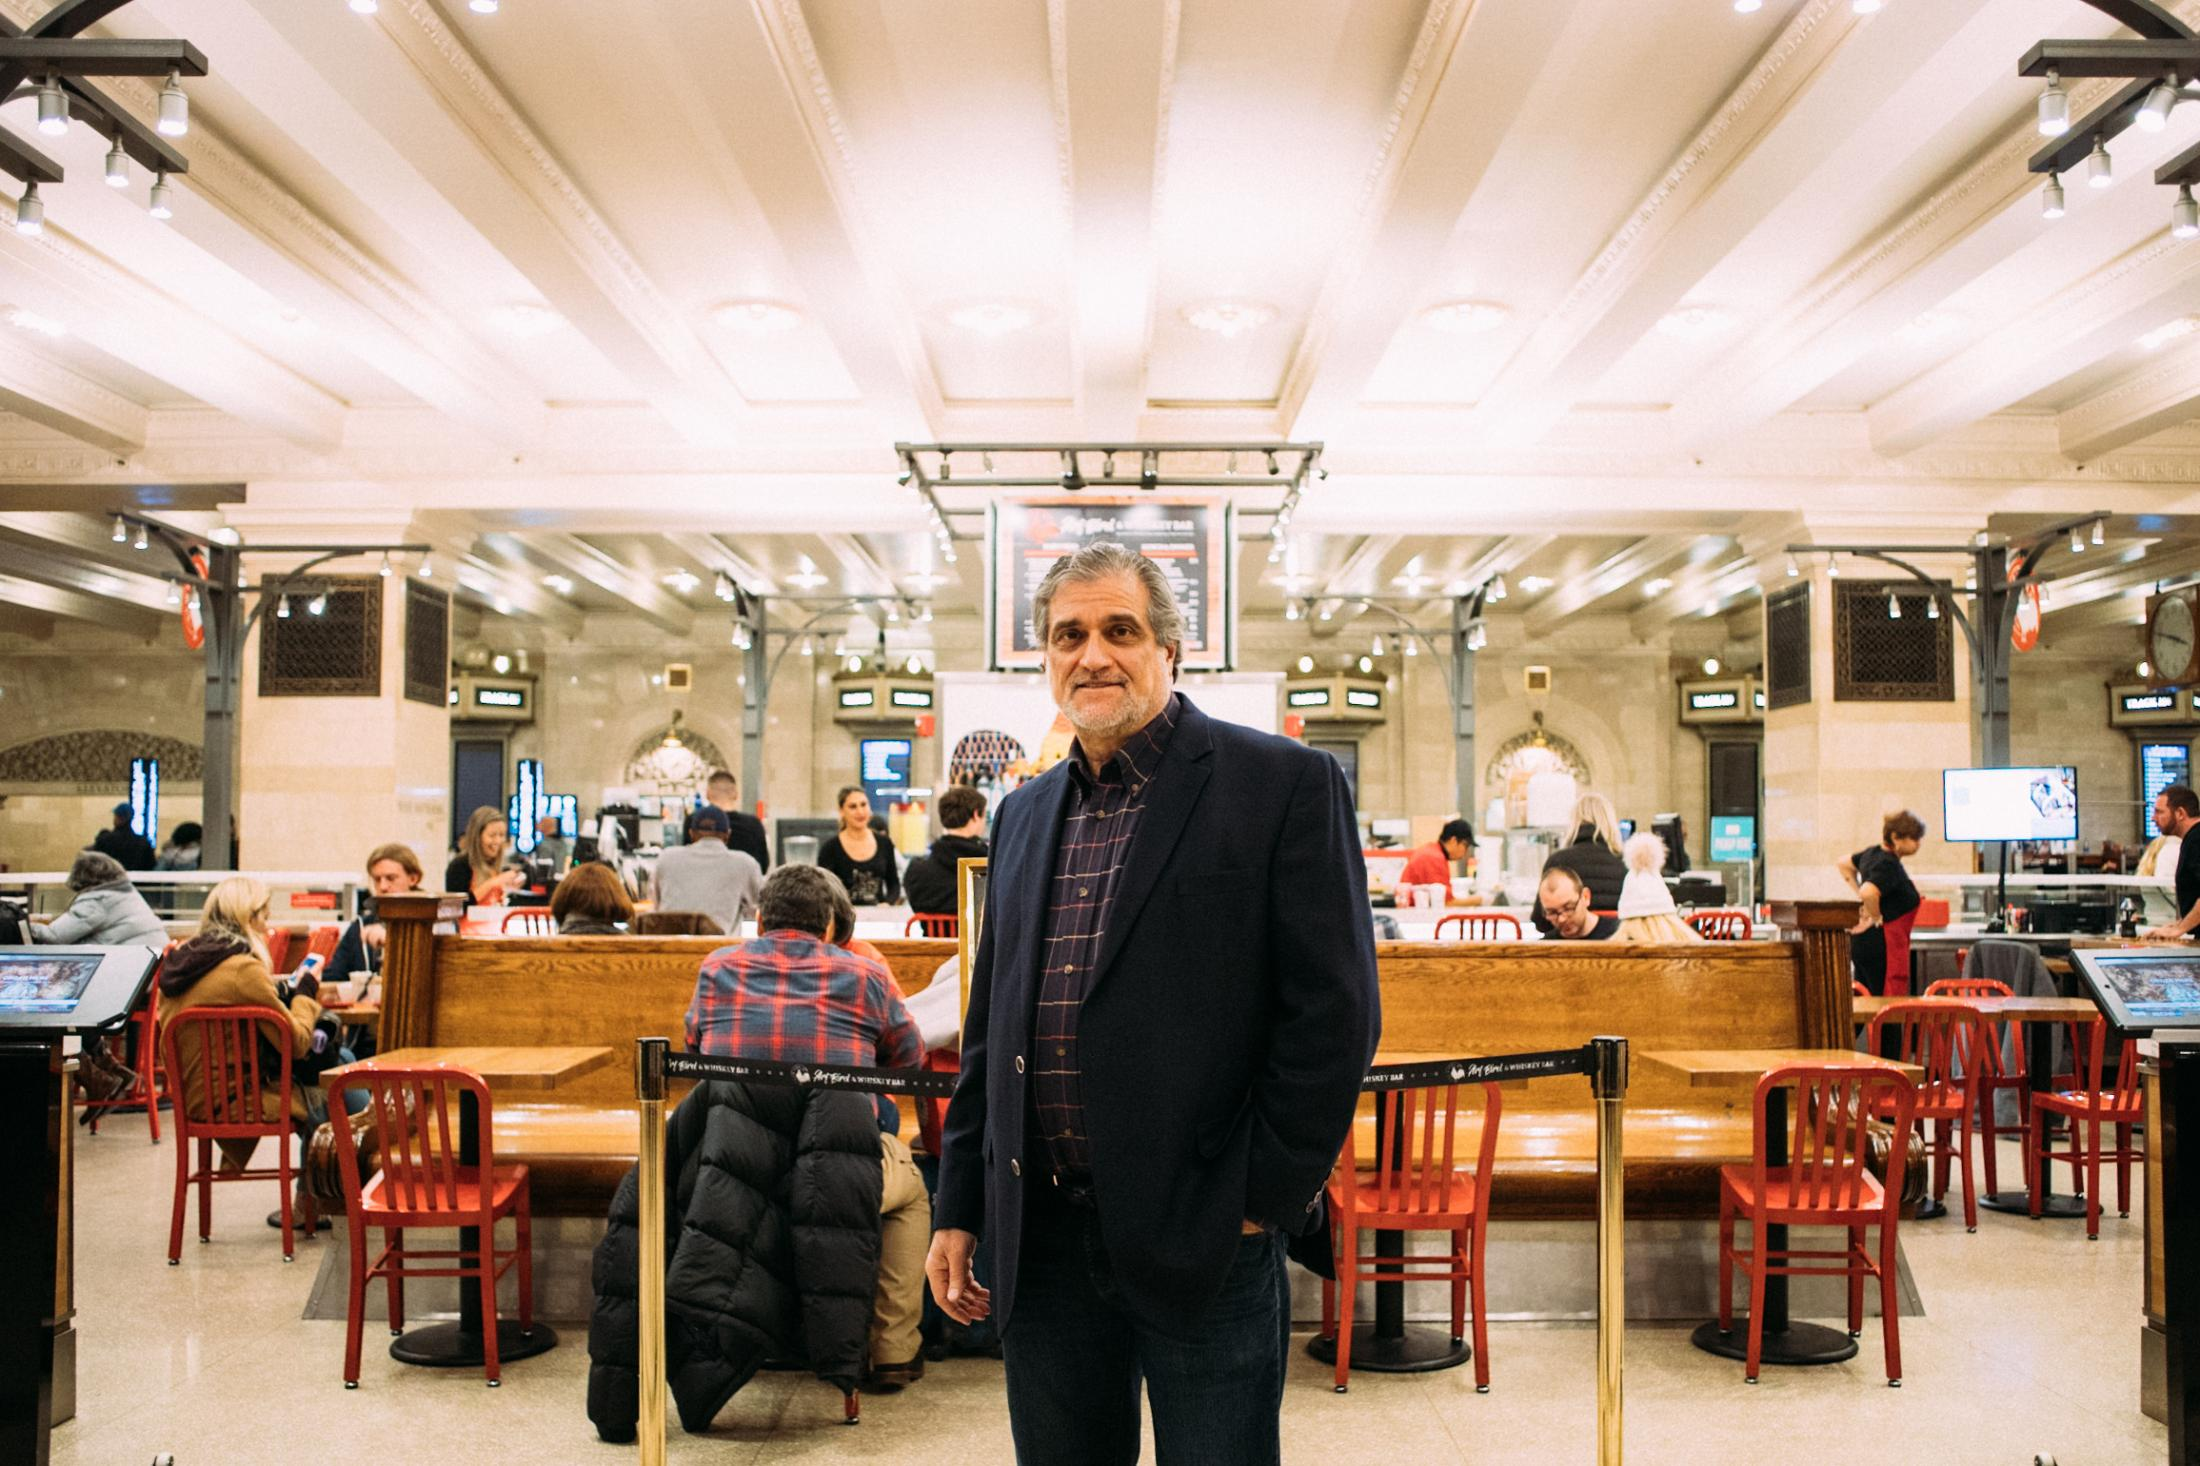 Joe Germanotta, the owner of Art Bird and Whiskey Bar, for The Wall Street Journal